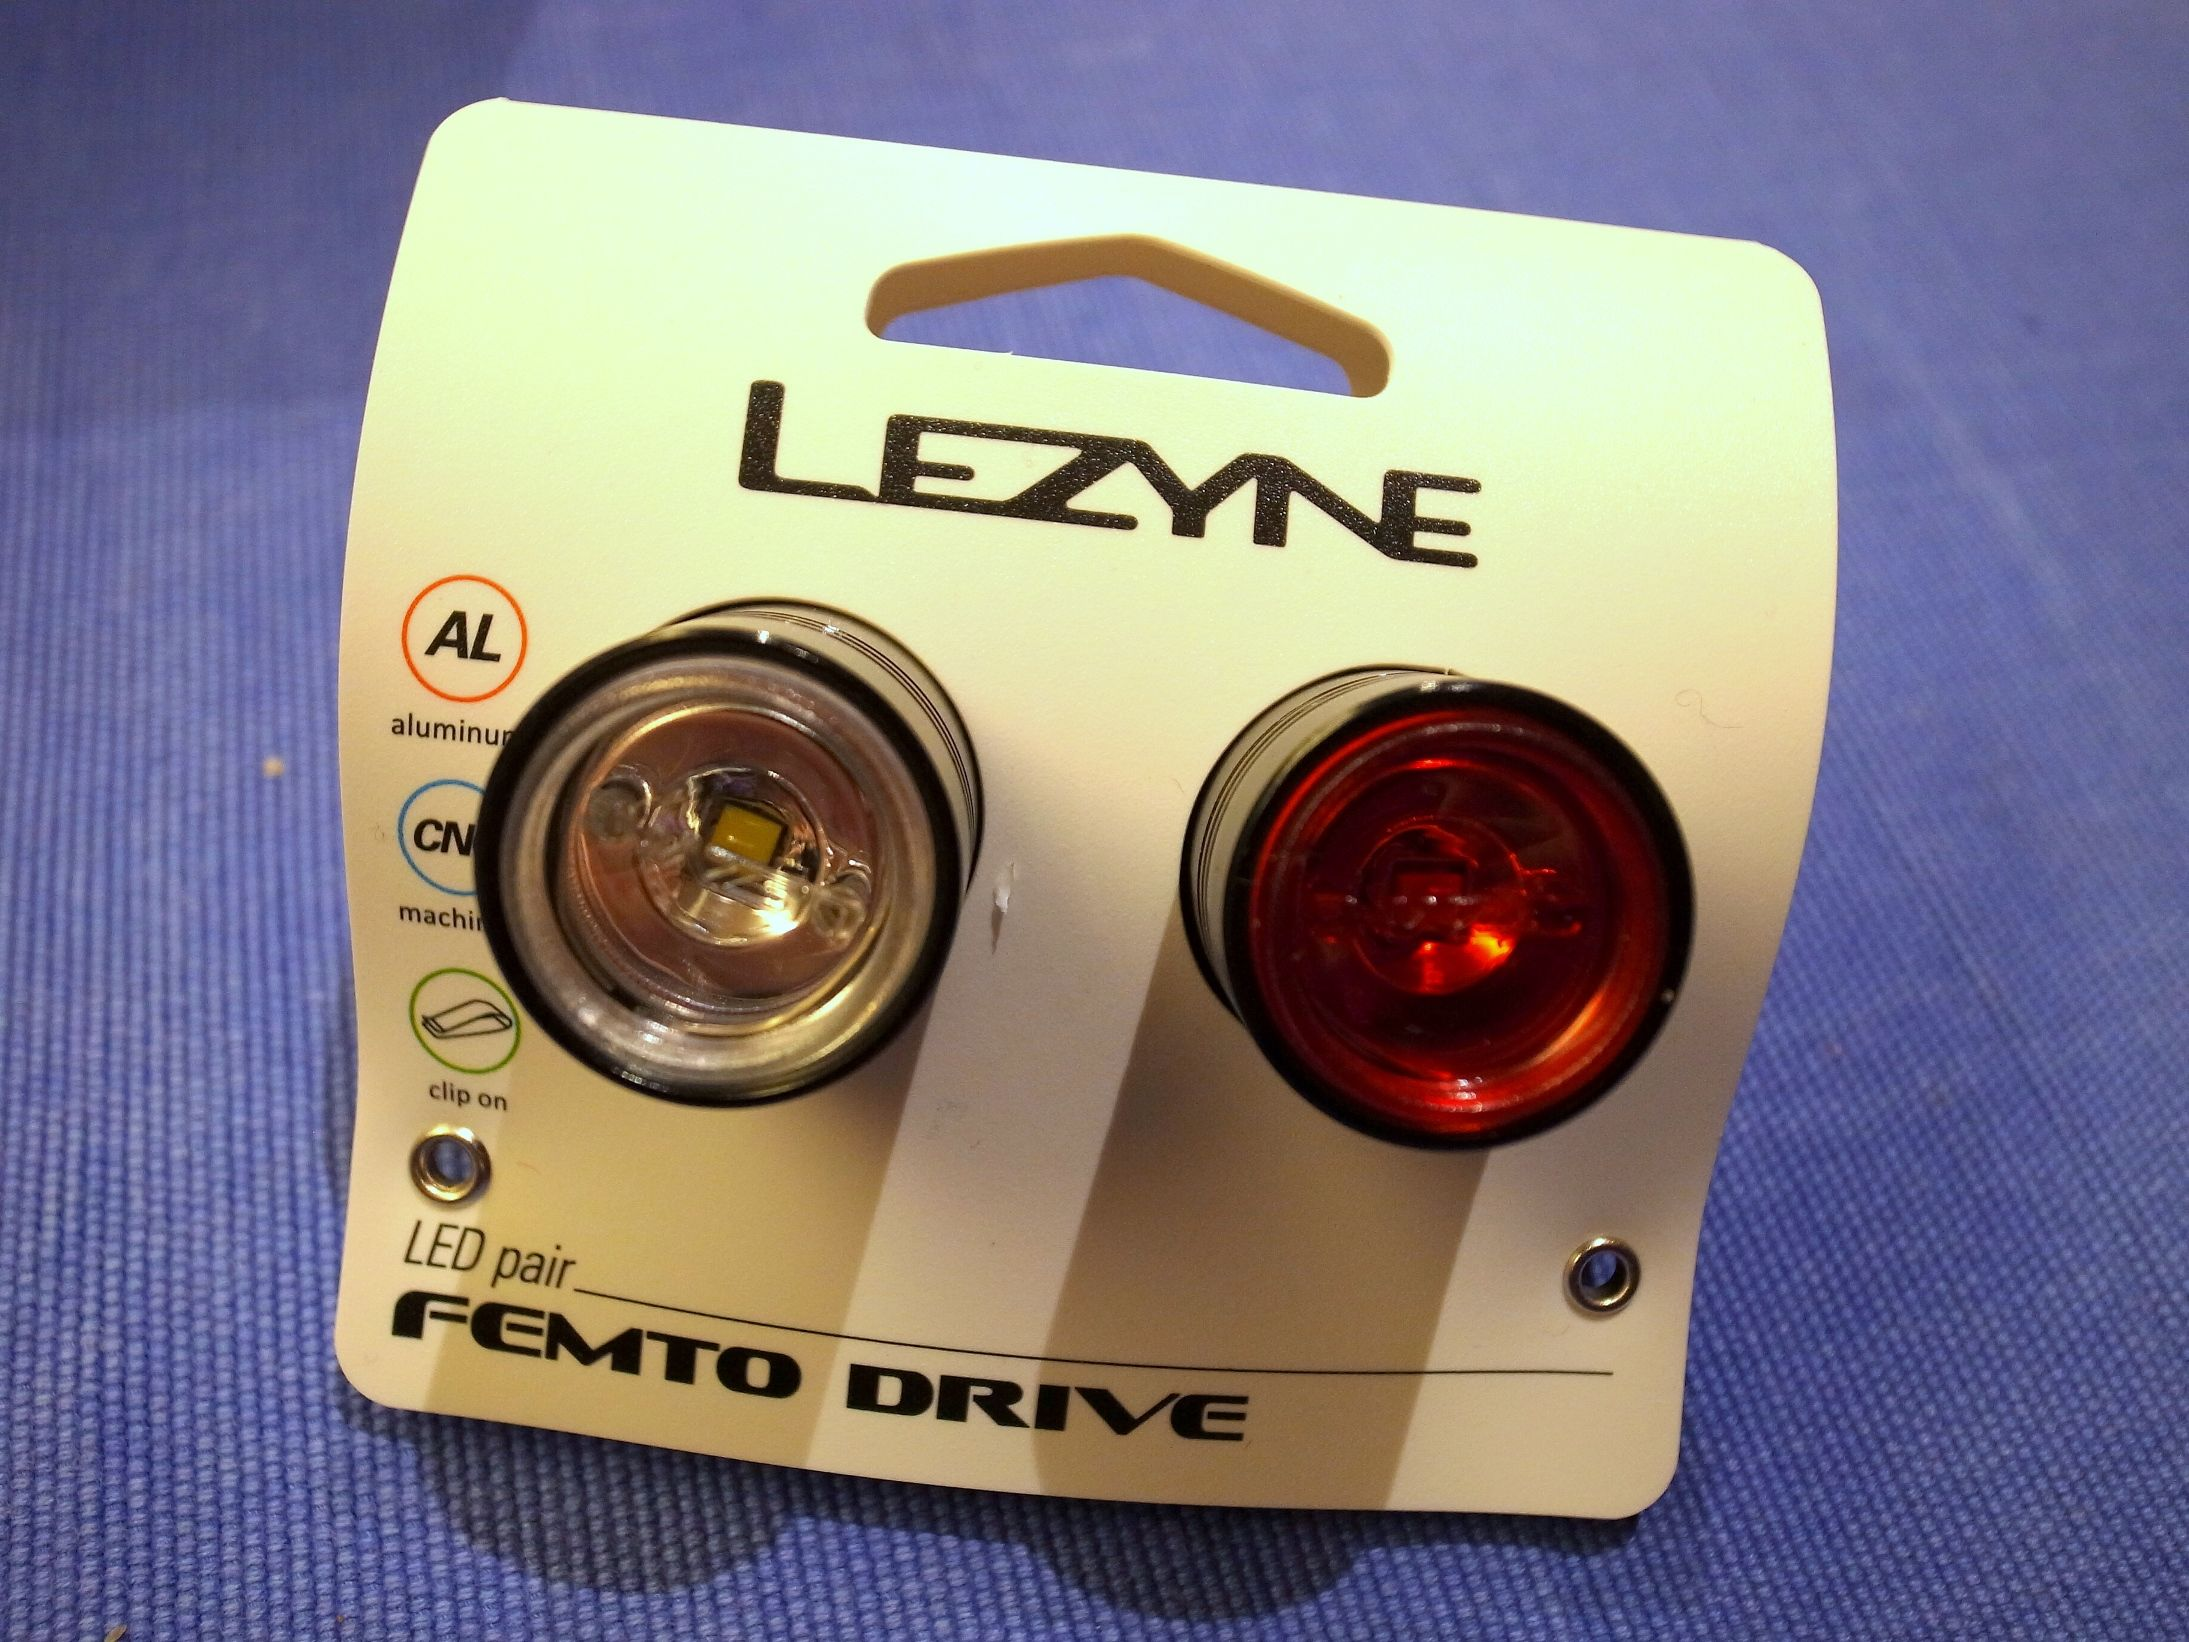 LEZYNEのFEMTO DRIVE FRONT 15L & REAR 7L LIGHT SET レビュー